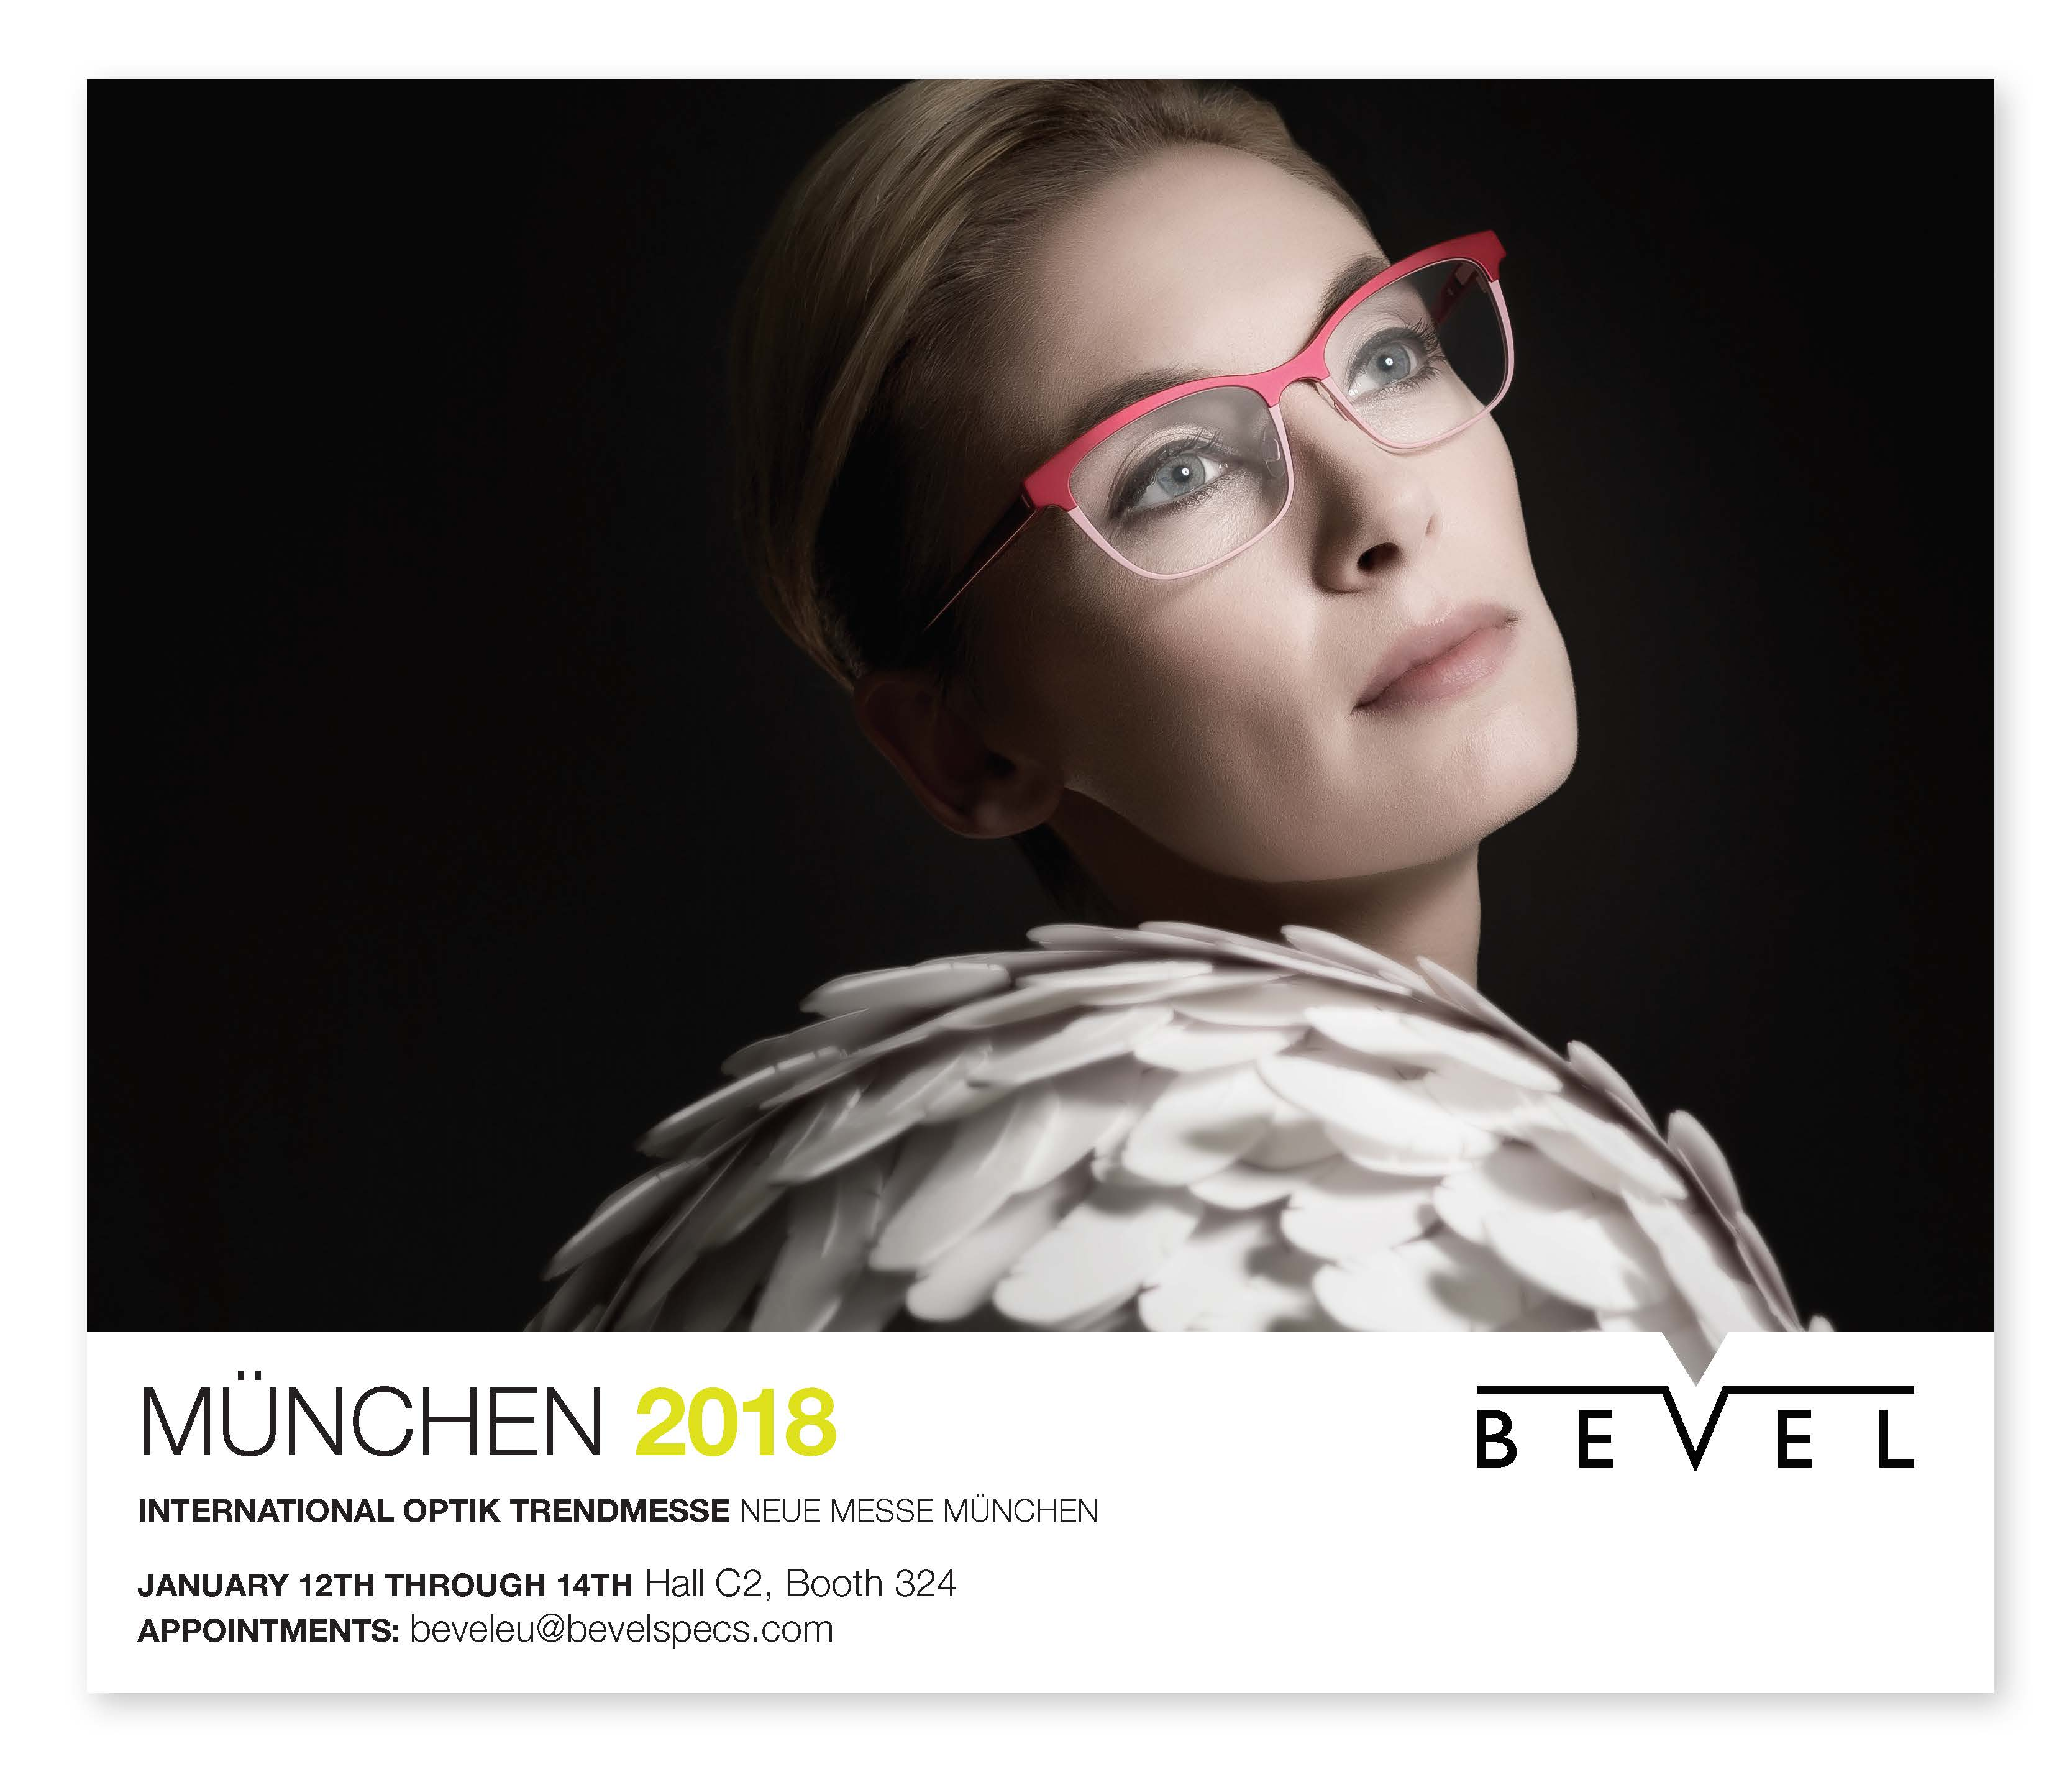 Bevel in Munich